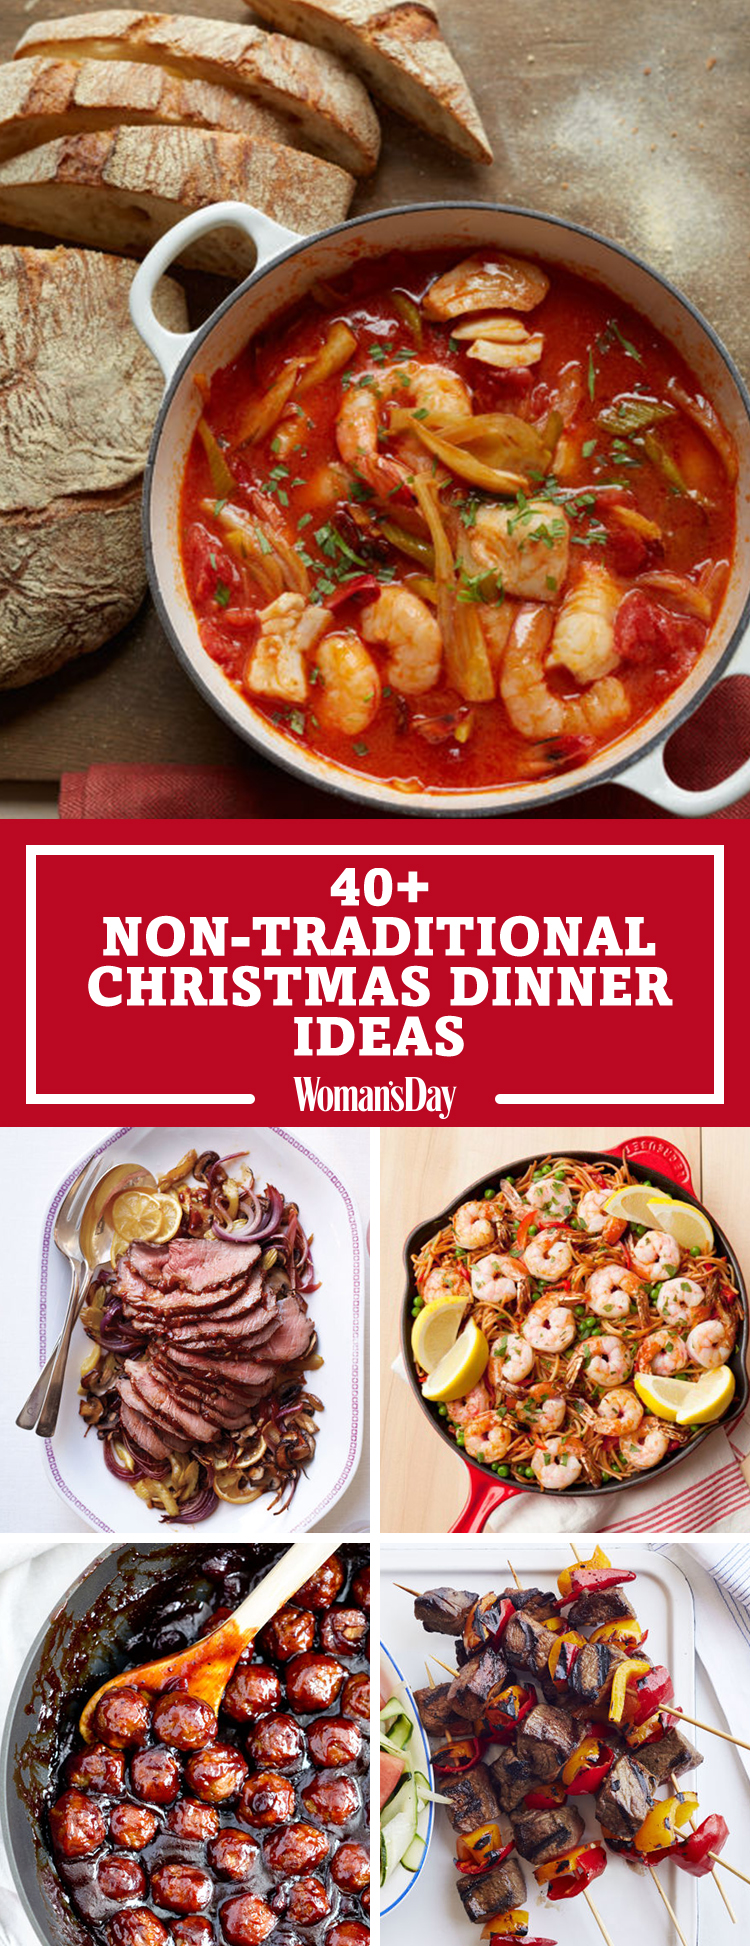 The Top 21 Ideas About Non Traditional Christmas Dinner Best Diet And Healthy Recipes Ever Recipes Collection